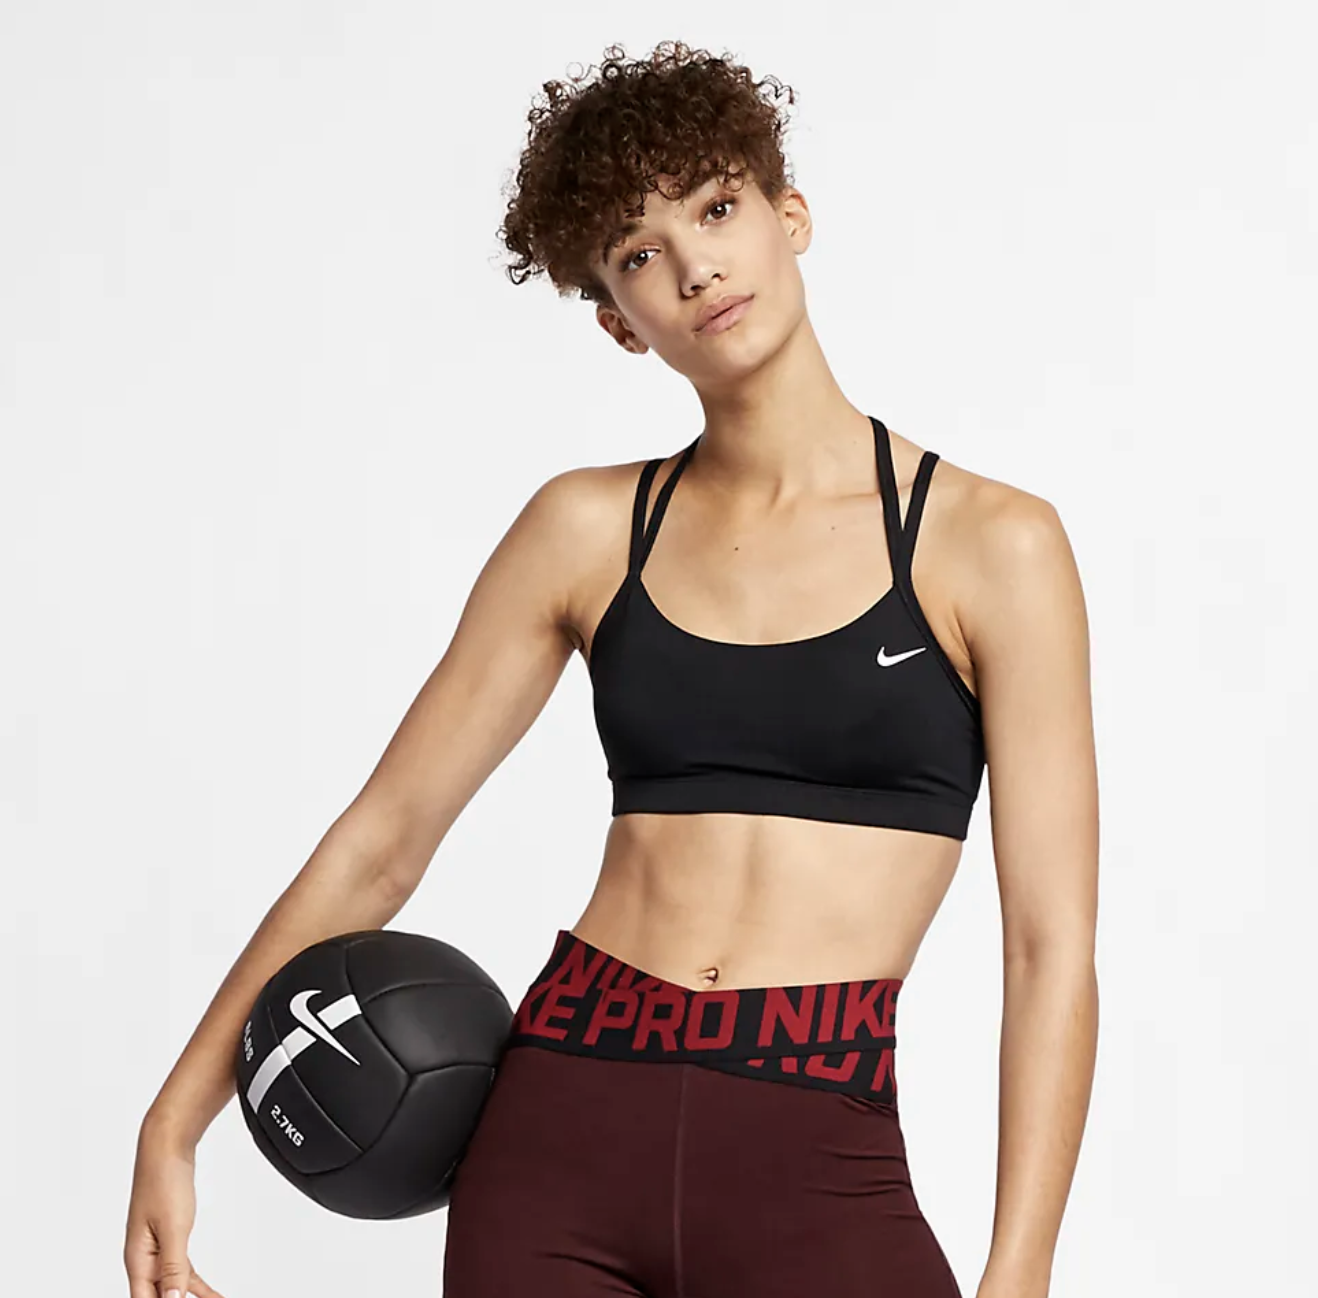 Model wears black Nike Women's Light-Support Sports Bra with dark red shorts